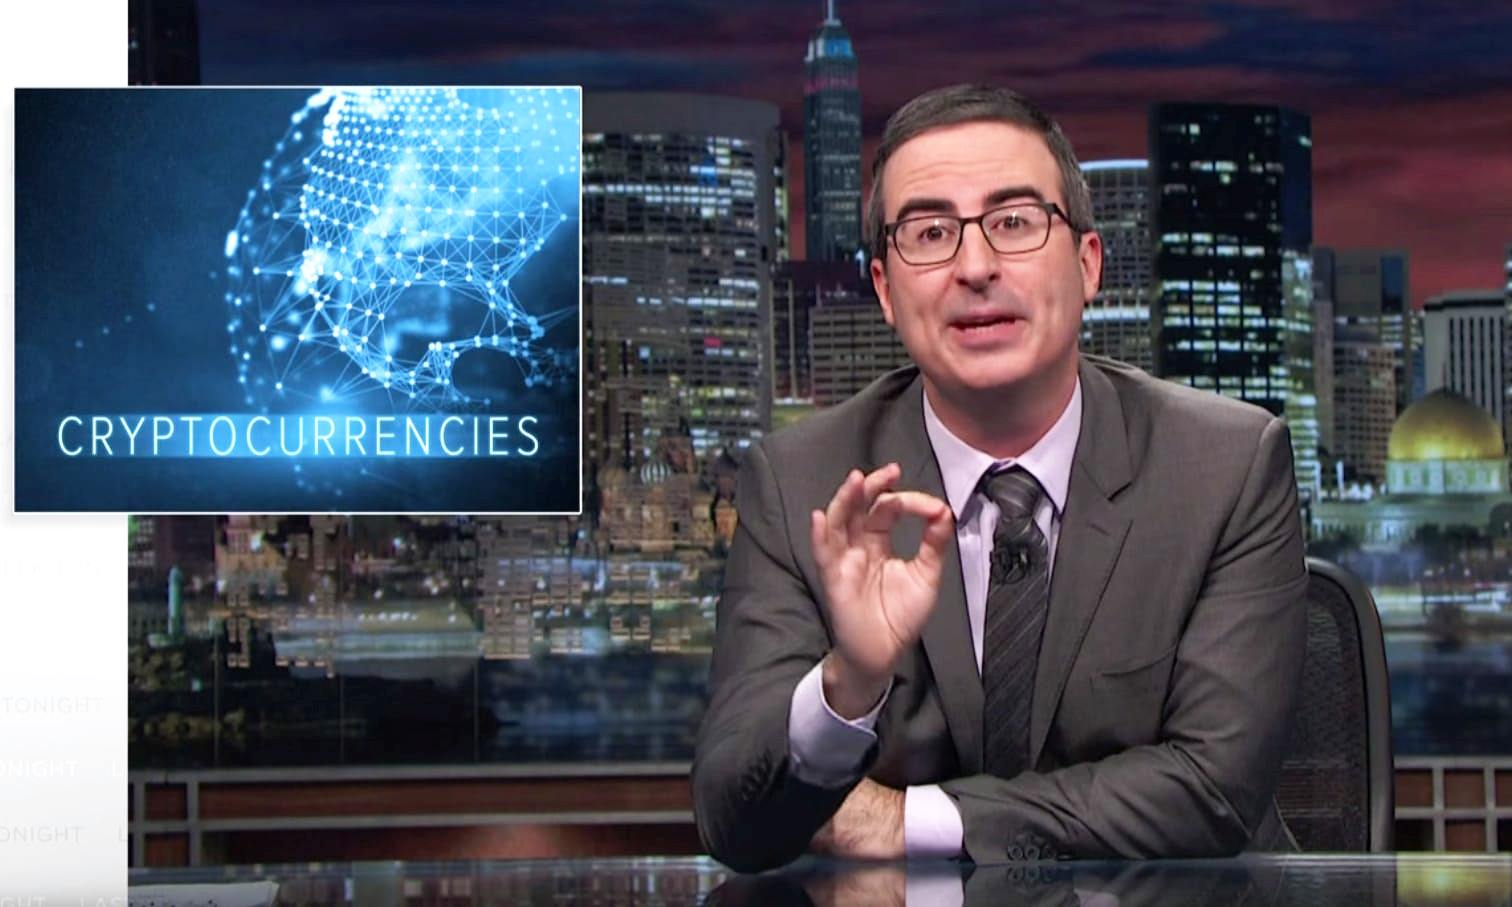 John Oliver's HBO Show Digs Crypto & Blockchain, Laughs at Bitconnect, EOS in Bitcoin-Themed Episode